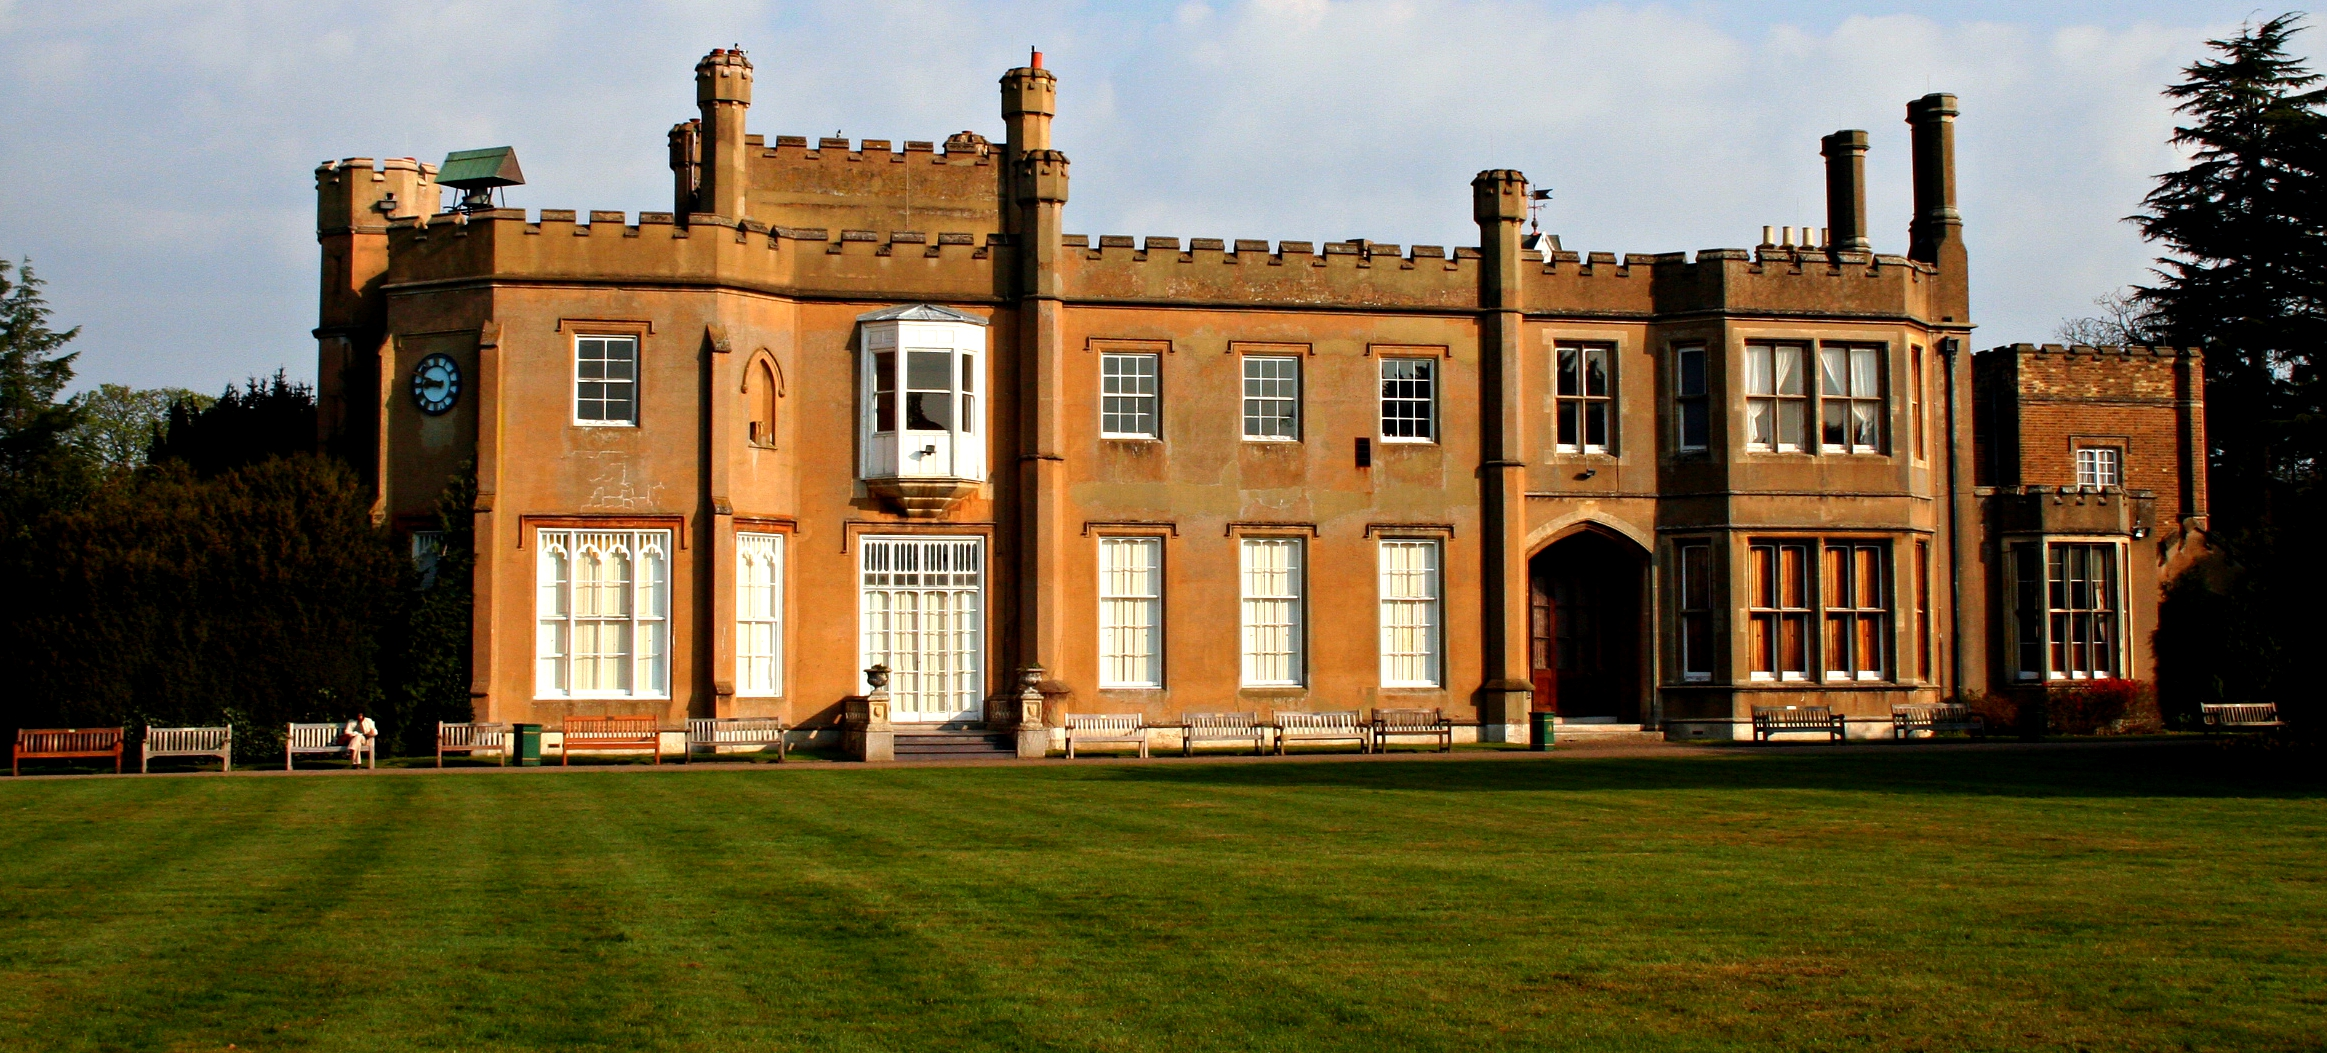 nonsuch mansion wikipedia